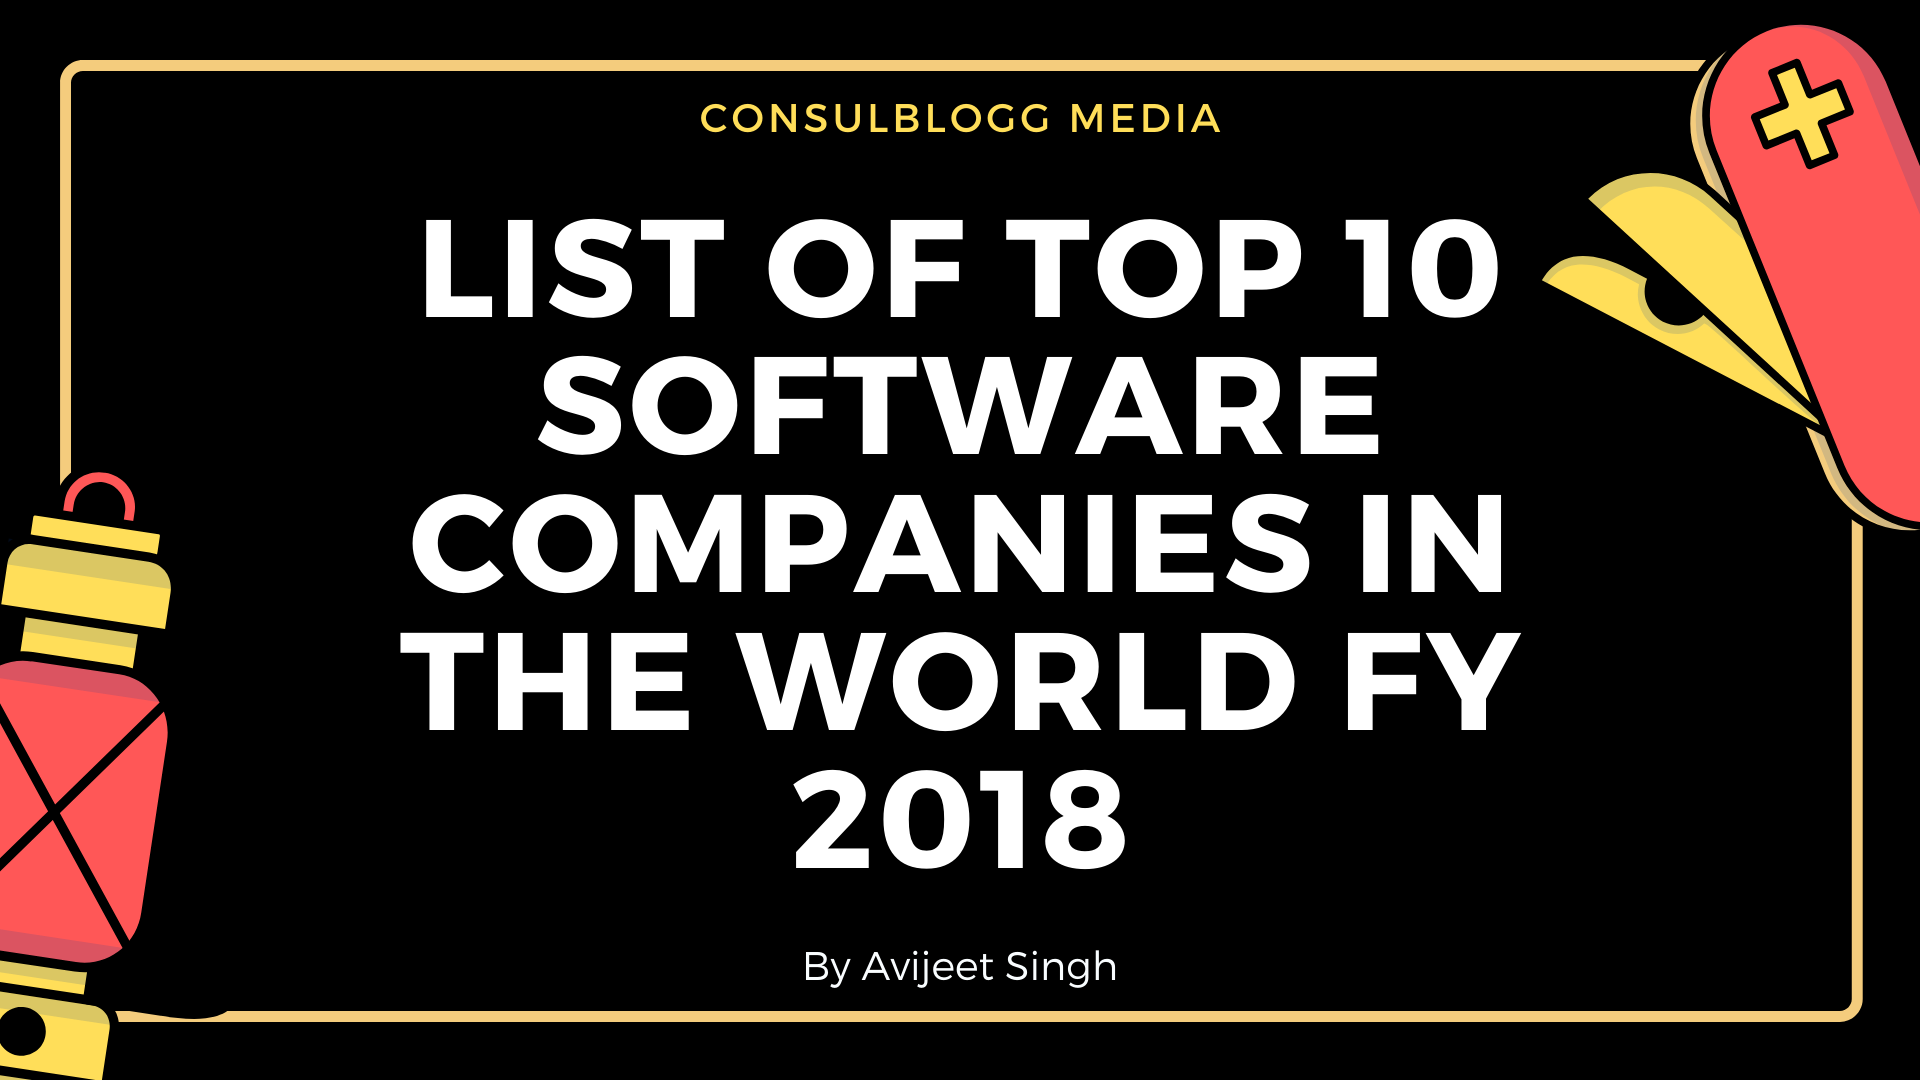 Top 10 software companies in the world 2018